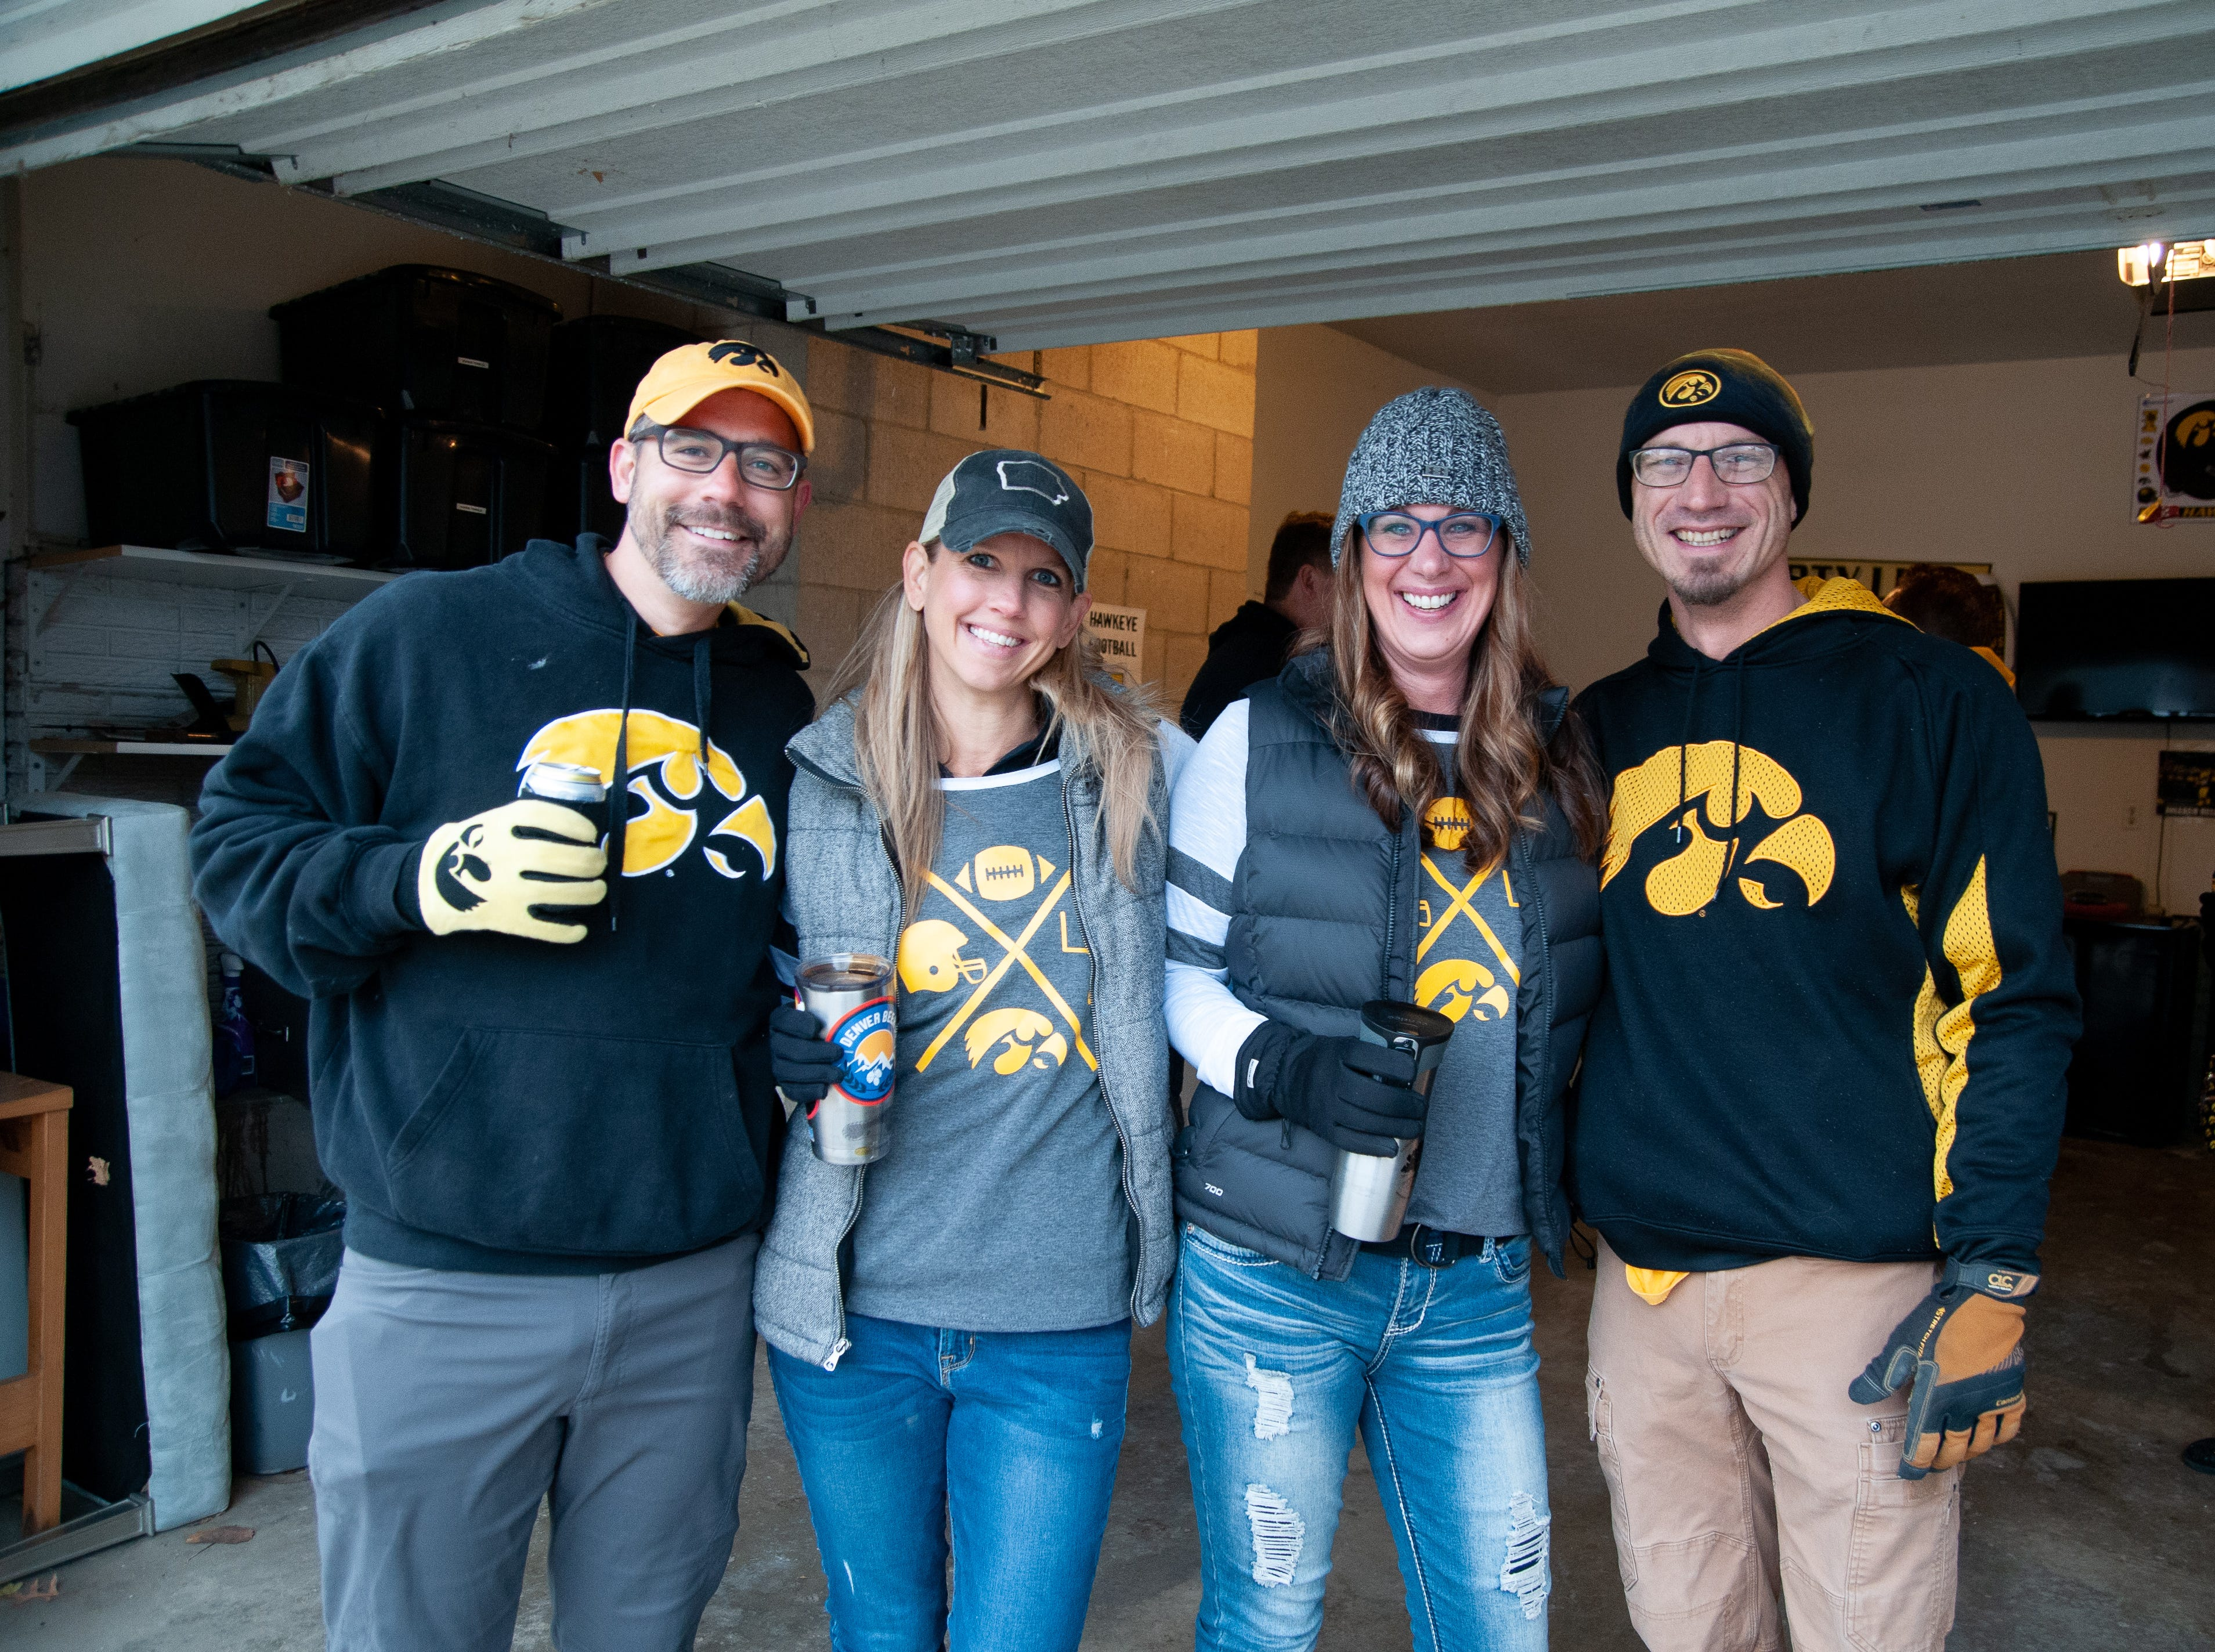 Casey, left, Jodi, Jamie and Cyle Carlson, of St. Louis and Sanborn, Friday, Nov. 23, 2018, while tailgating before the Iowa game against Nebraska in Iowa City.